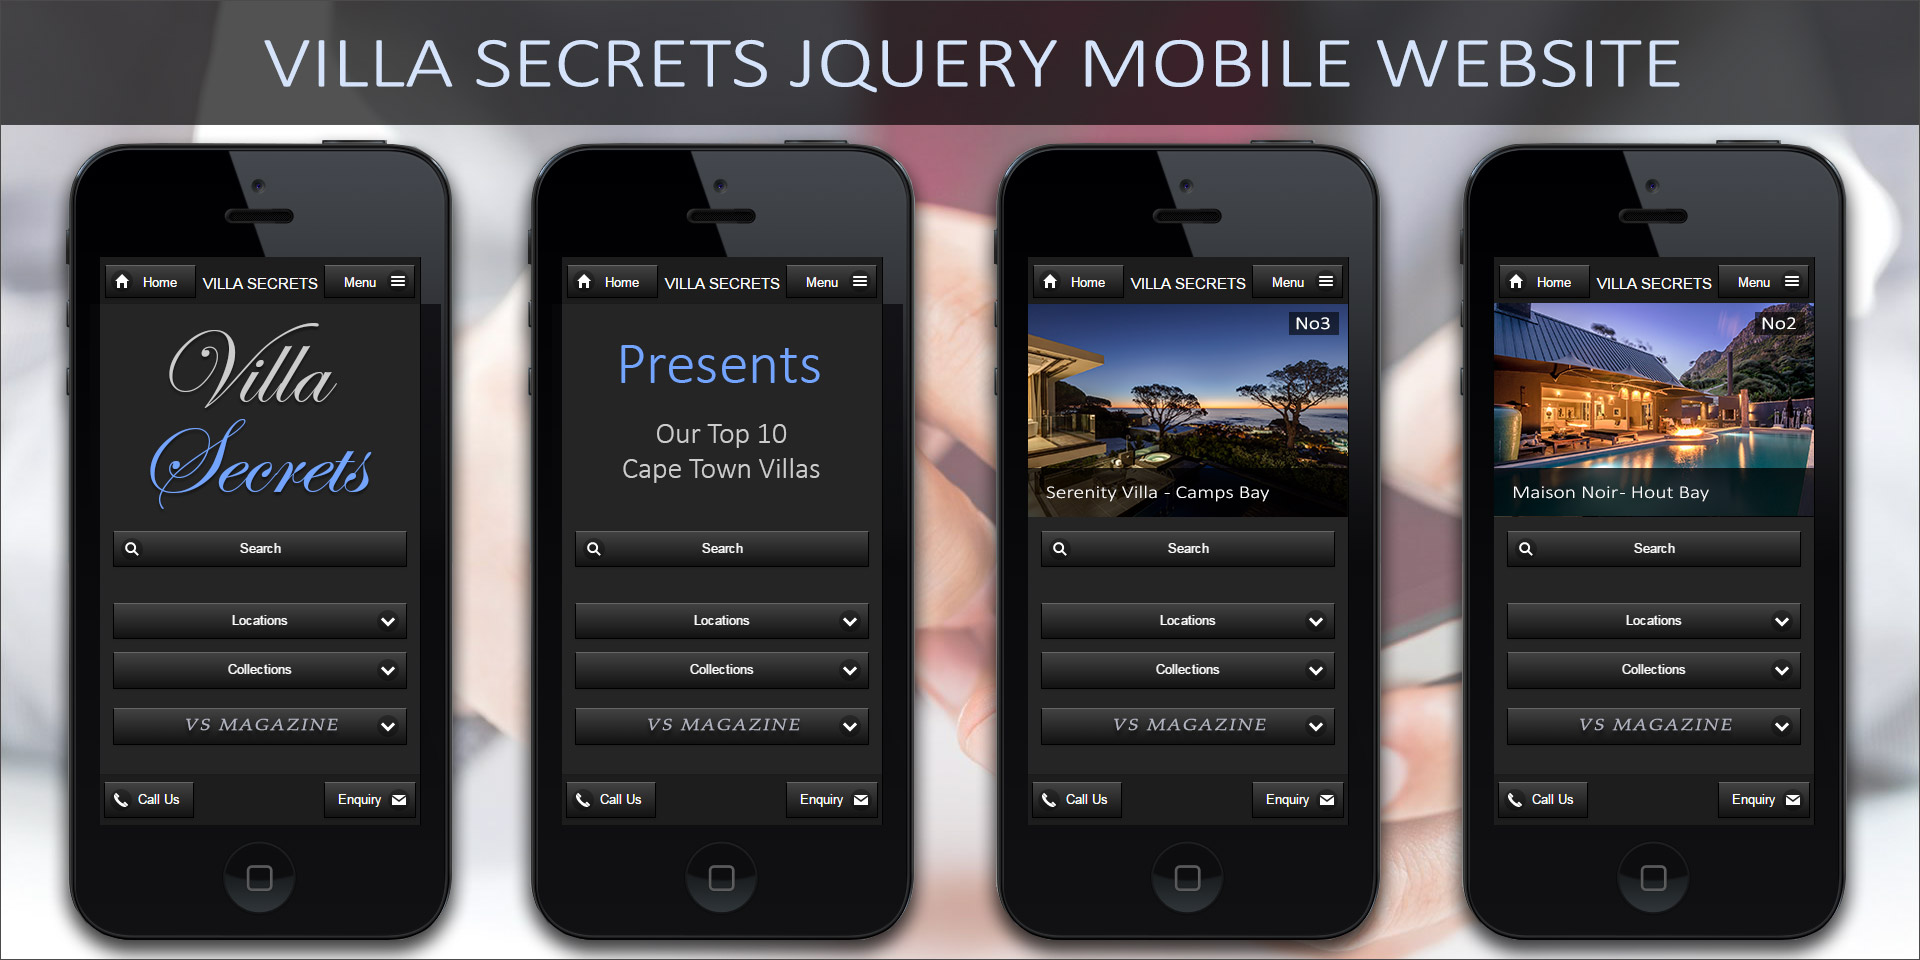 Villa-Secrets-JQuery-Mobile-Website--Homepage-Slide-Show